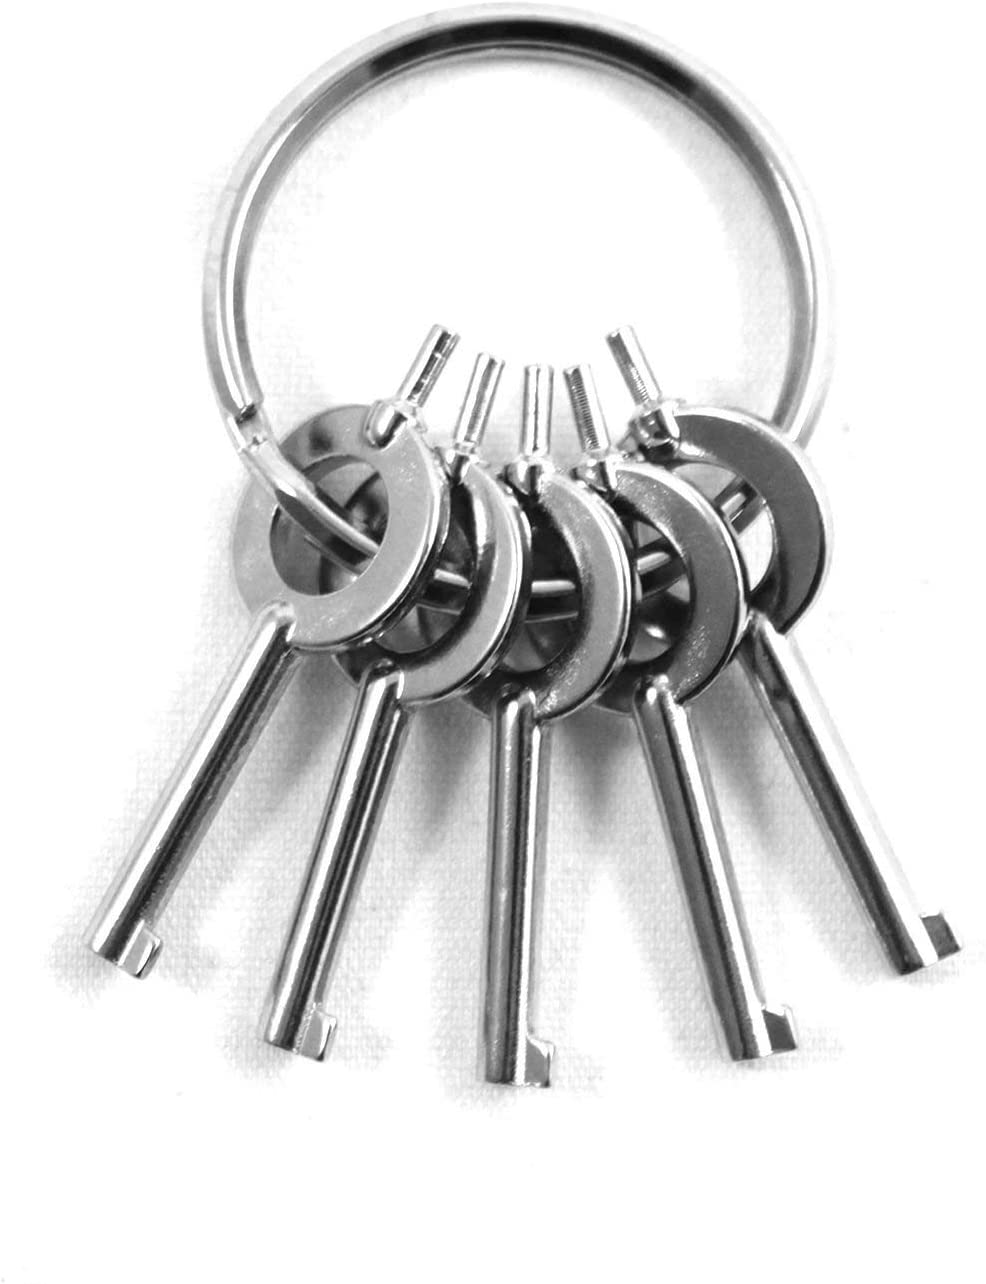 x2 Universal Police Tactical Clear Non Metallic Covert Police Handcuff Cuff Key